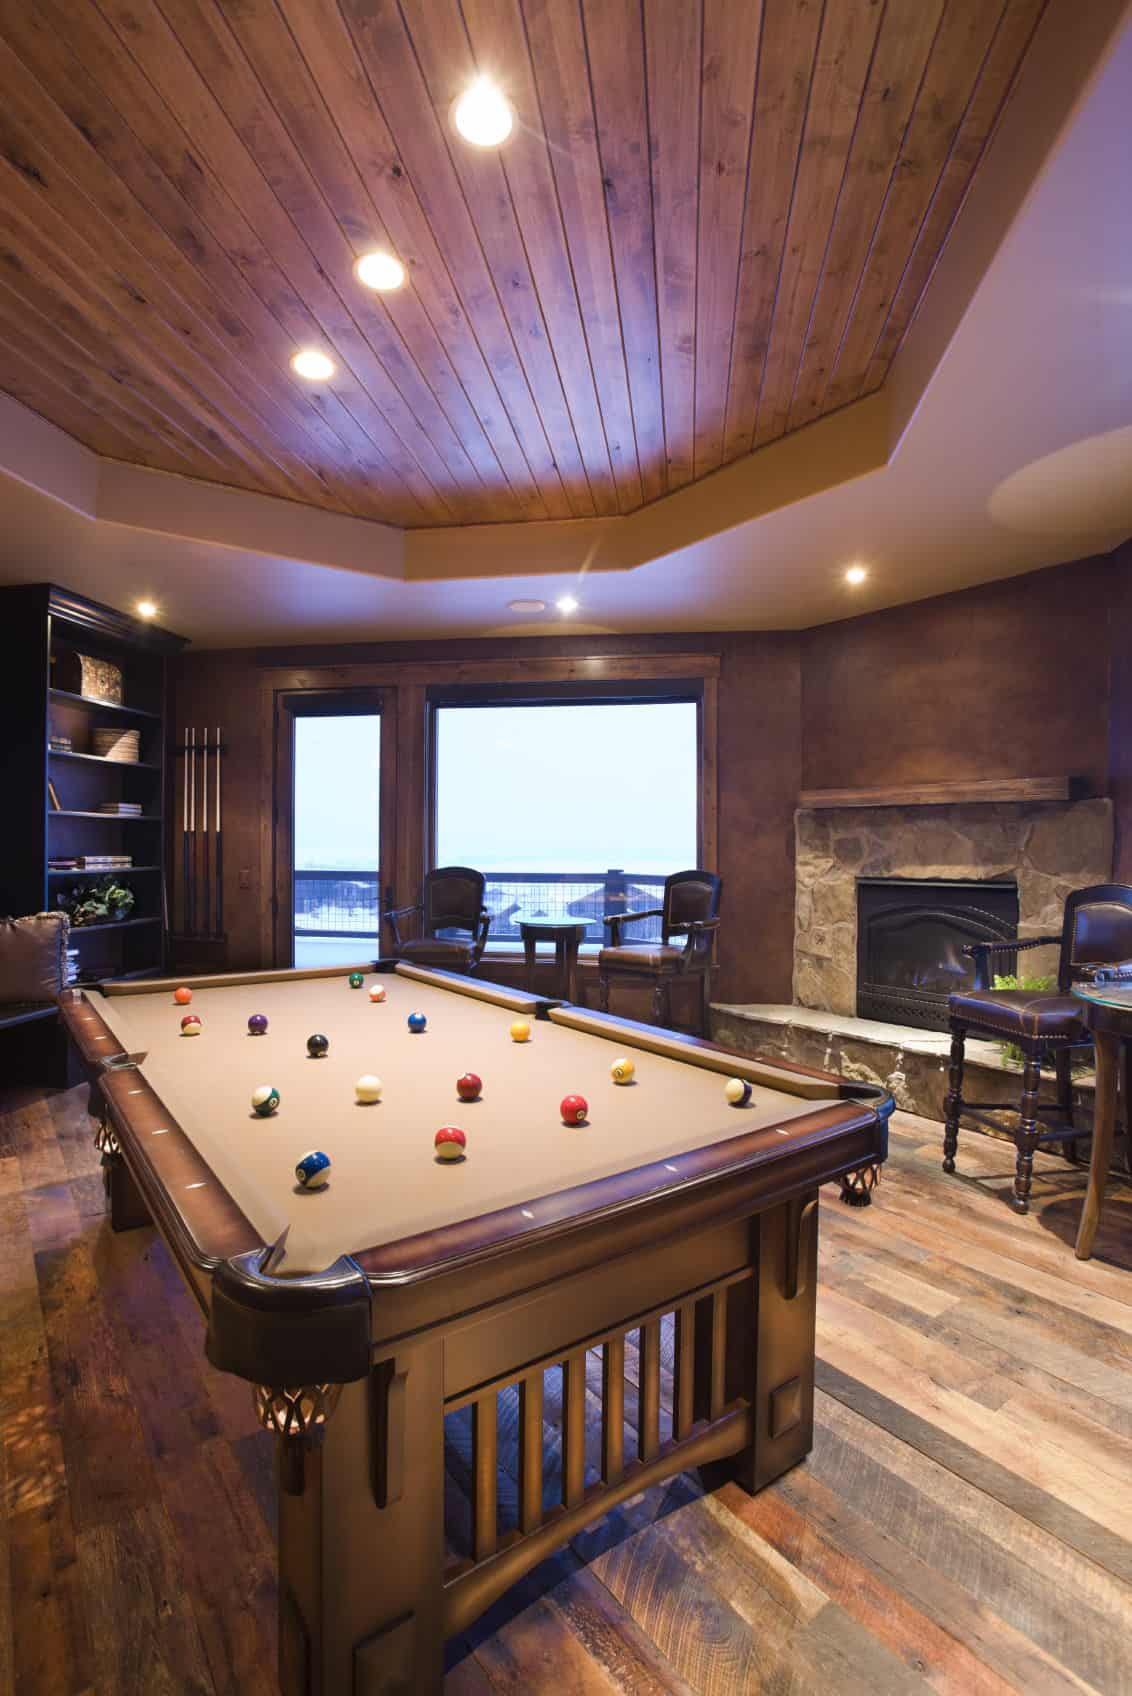 A beautiful man cave featuring hardwood flooring and a classy ceiling along with a stylish billiards pool.